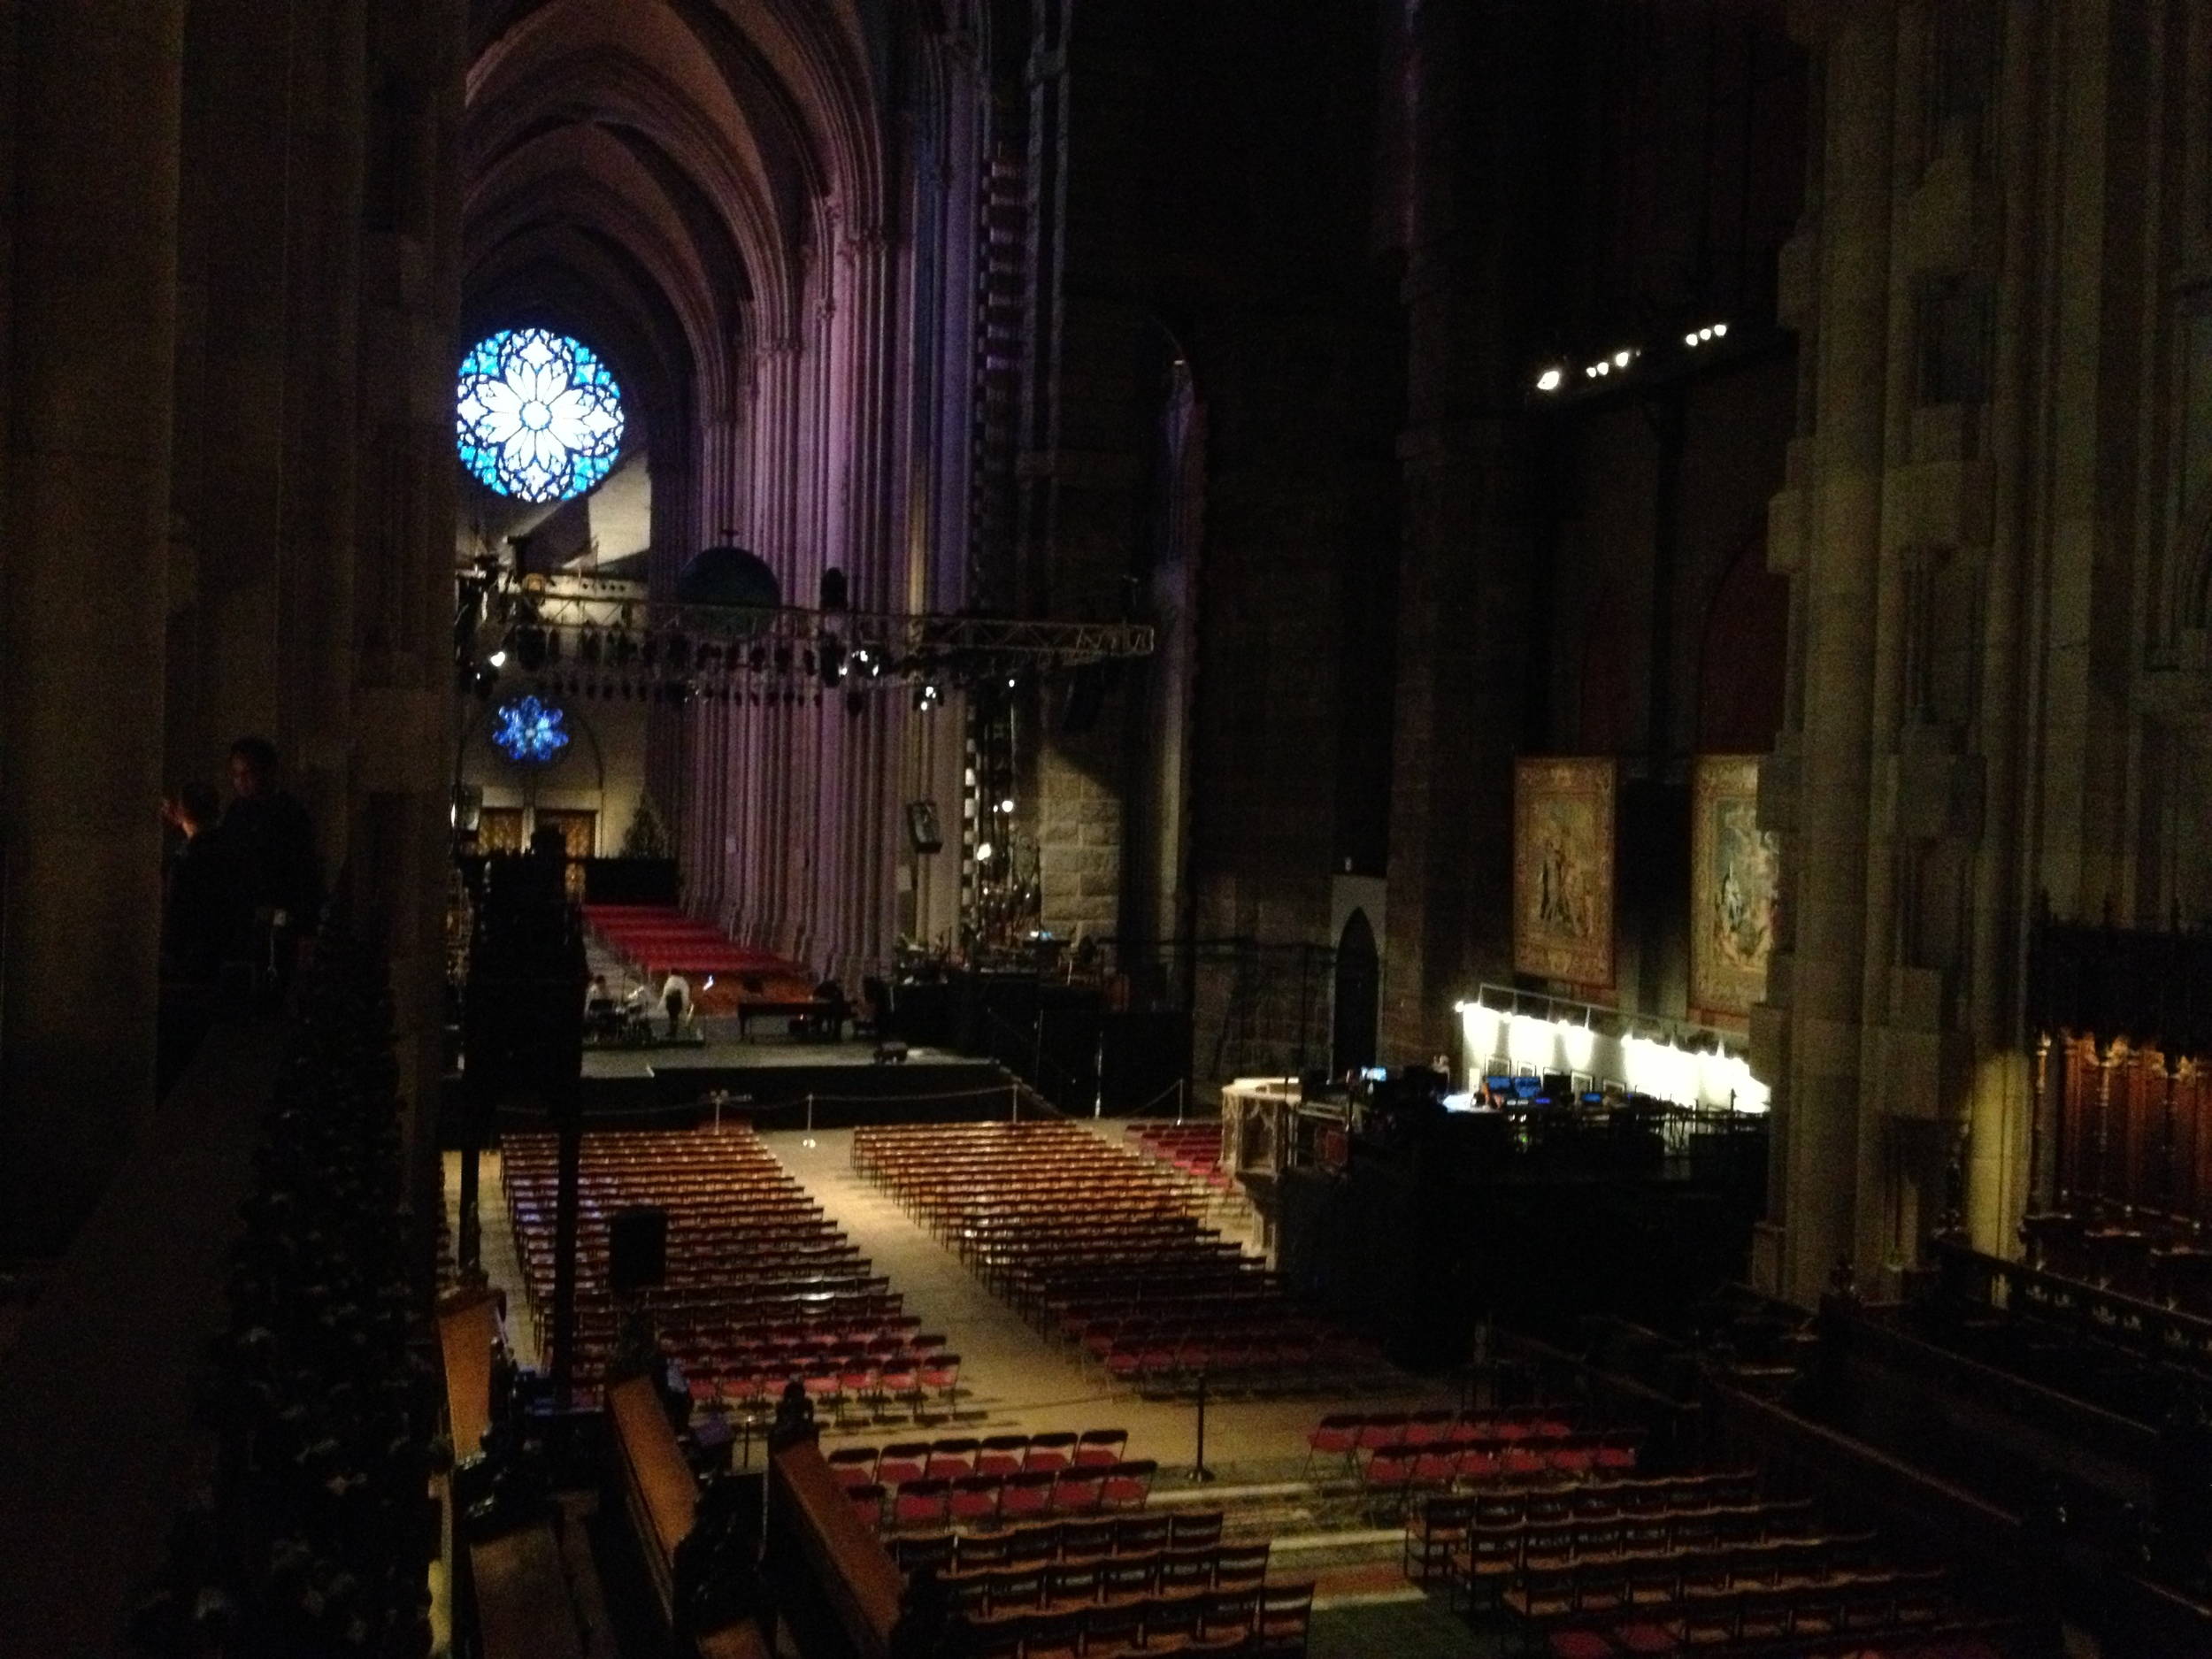 So very fortunate to be one of many artists in residence at the Cathedral St. John the Divine in New York.